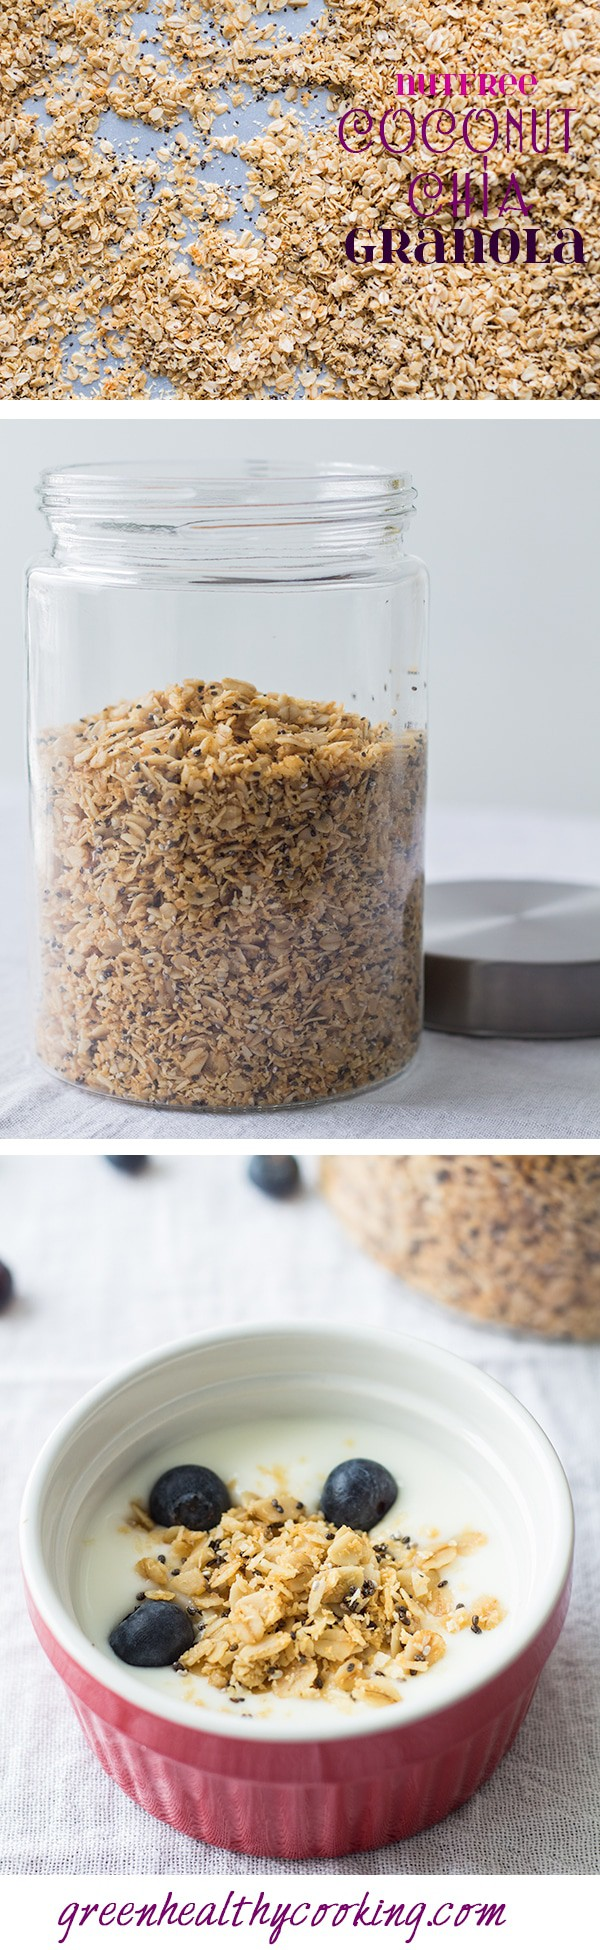 Collage of Nutfree Coconut Chia Granola images with text overlay for Pinterest.